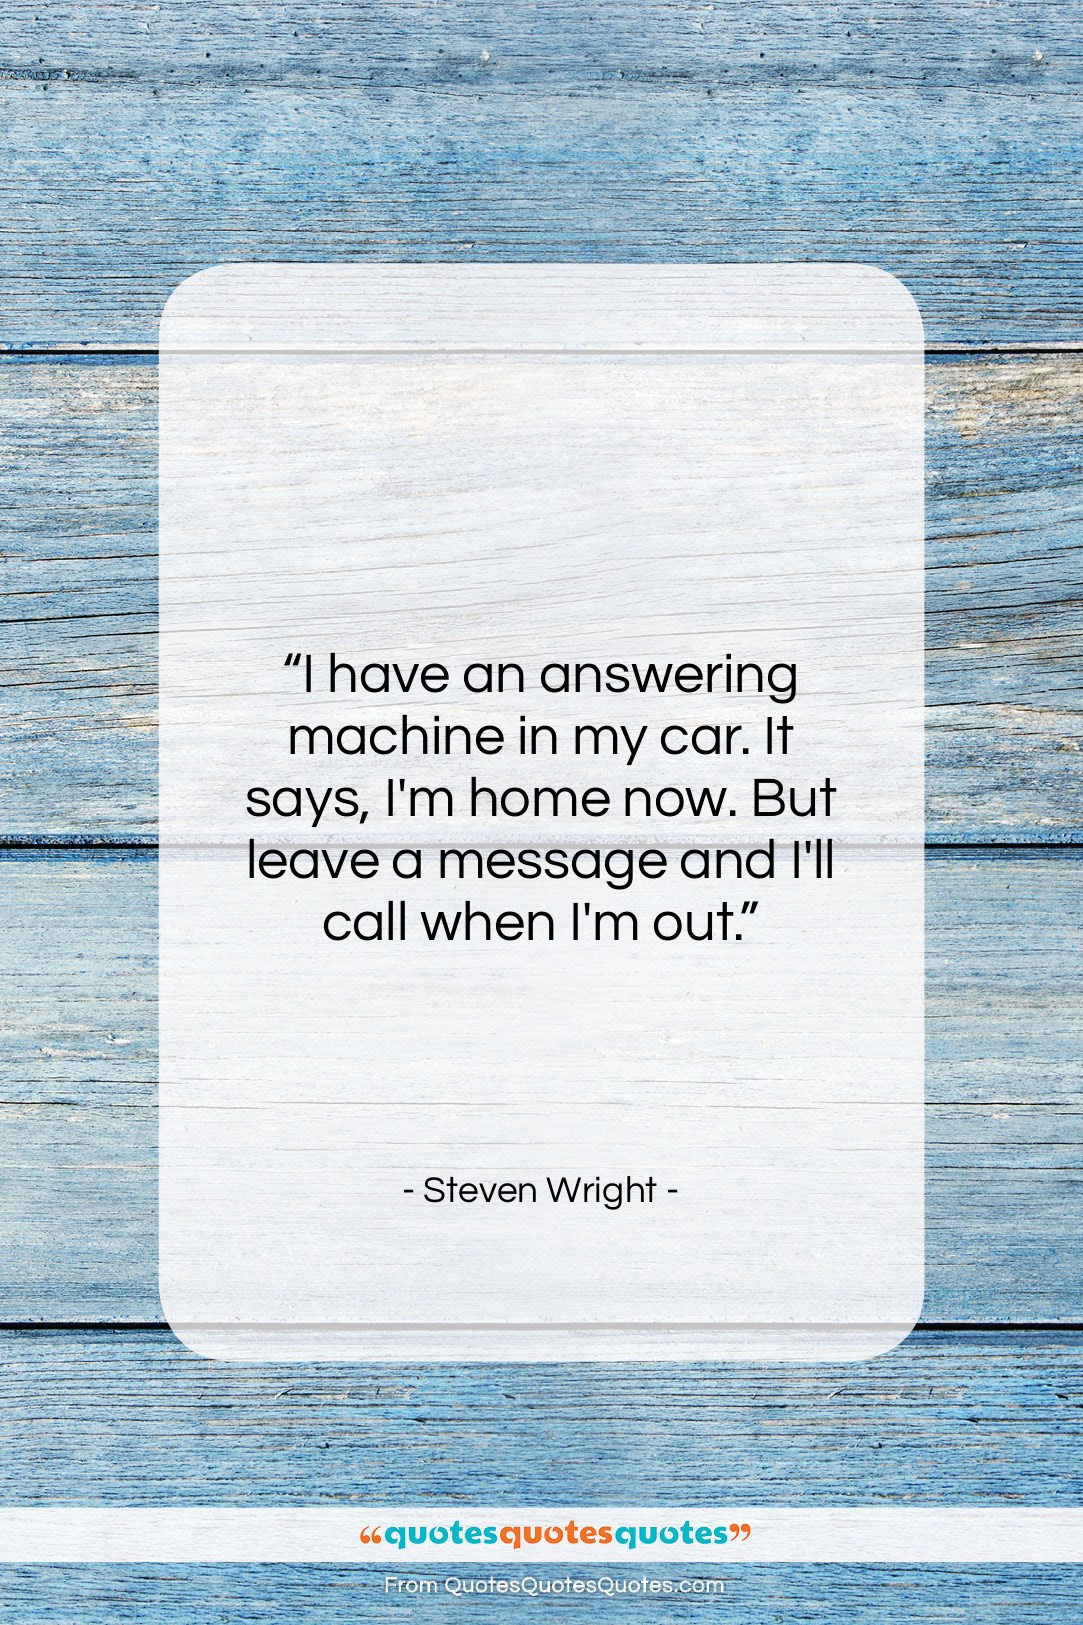 """Steven Wright quote: """"I have an answering machine in my…""""- at QuotesQuotesQuotes.com"""